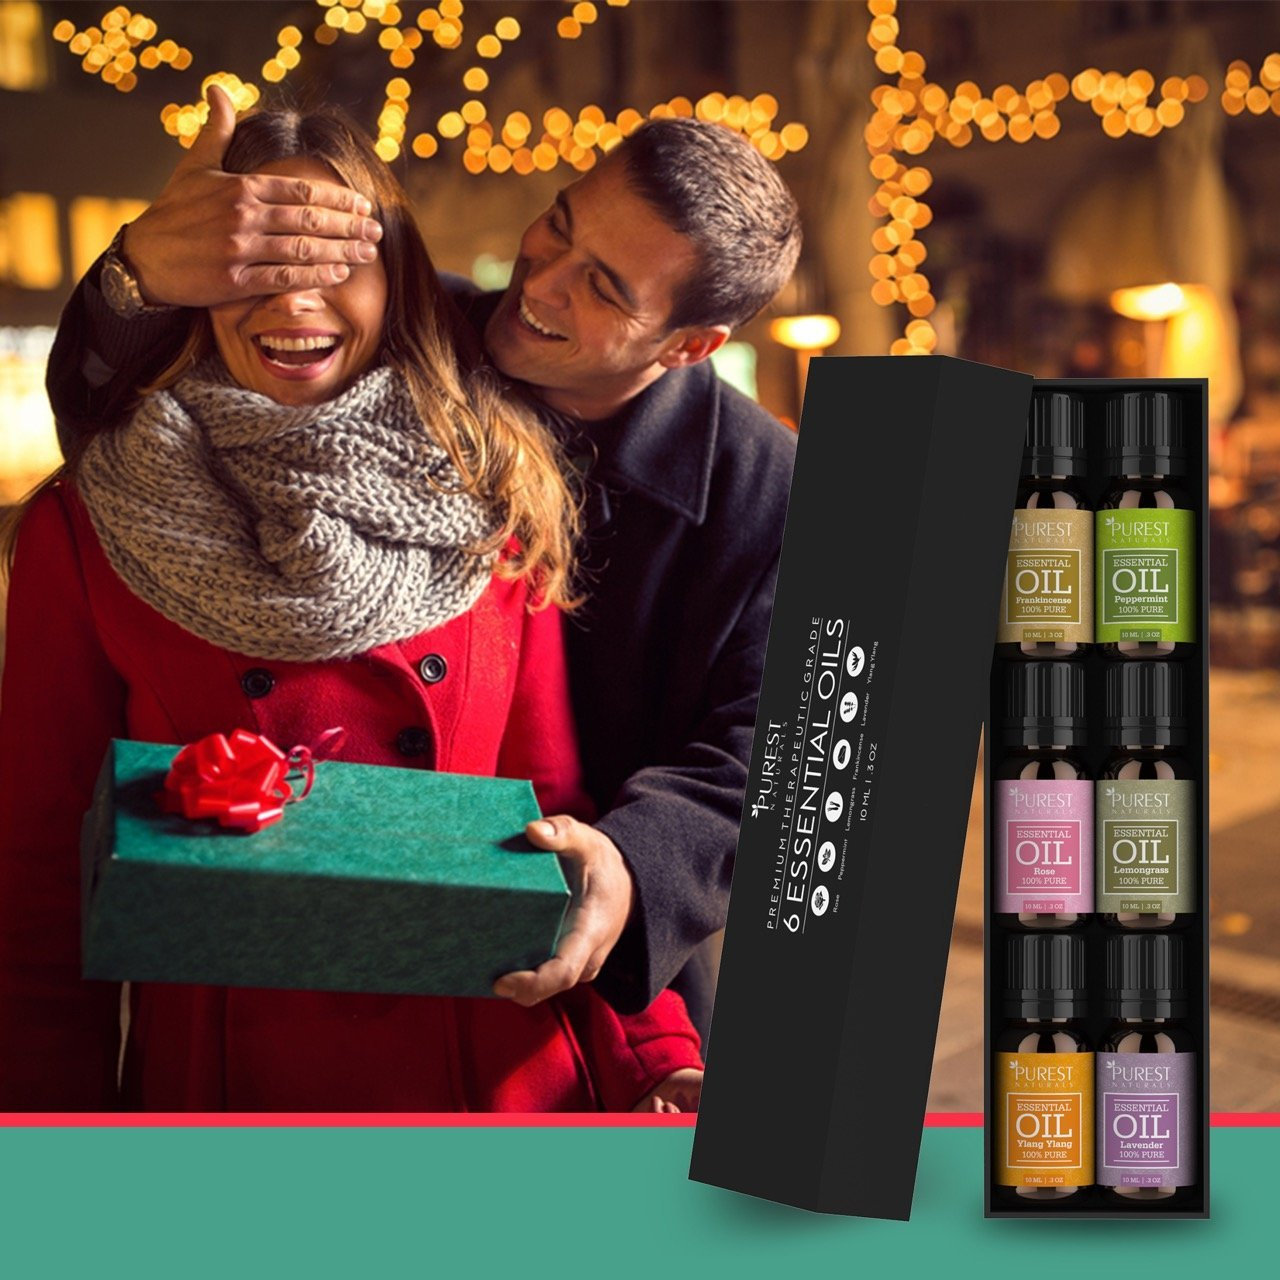 Purest Naturals Aromatherapy Top 6 Essential Oils Gift Set - 100% Pure Therapeutic Grade Oil - Rose Frankincense Lavender Ylang Ylang Lemongrass & Peppermint -Best For Oil Diffuser, Massage